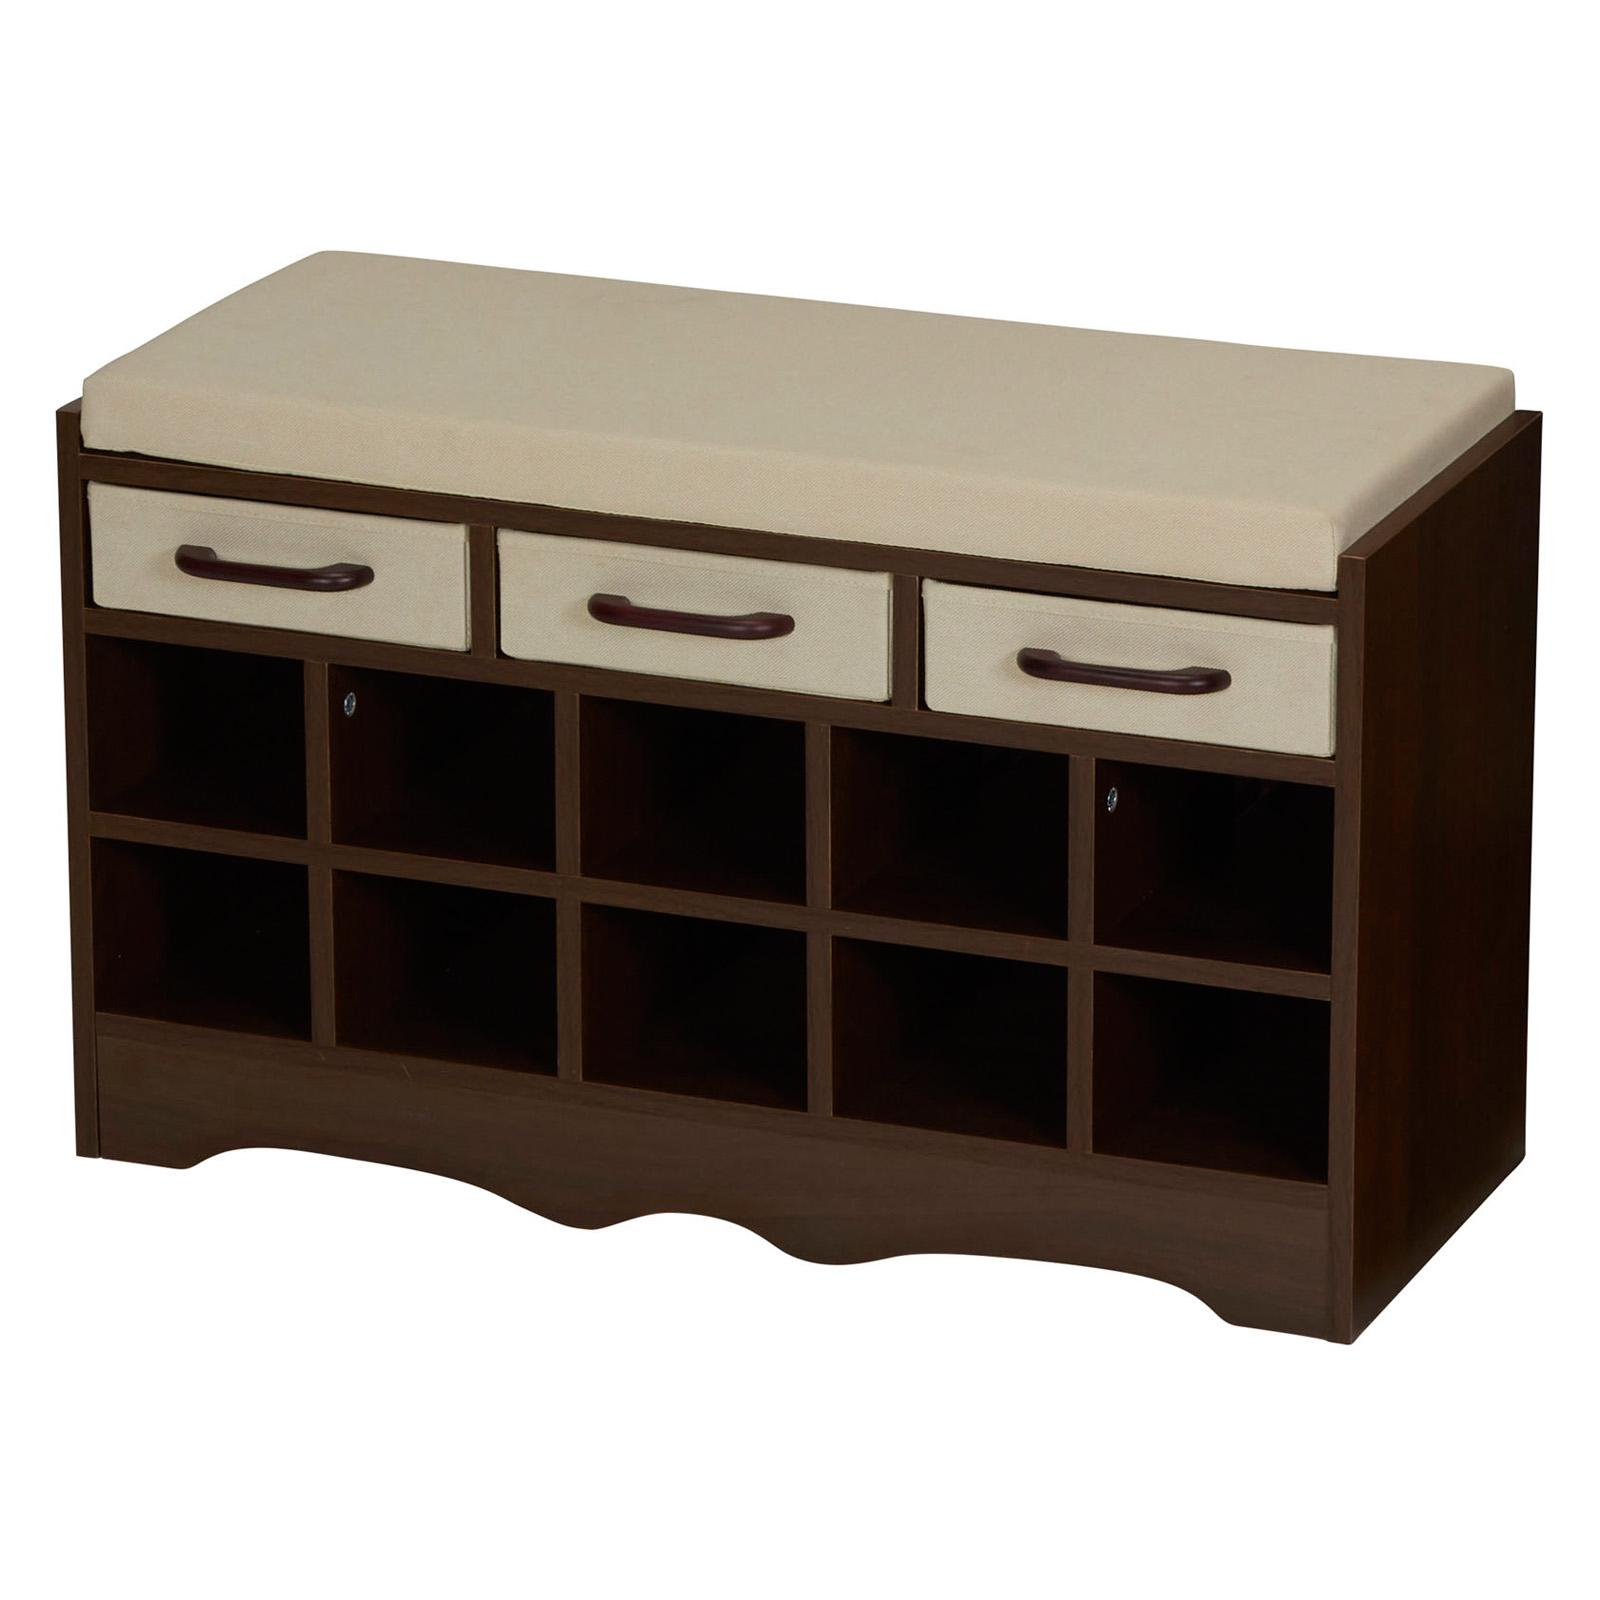 Household Essentials Entryway Storage Bench With Shoe